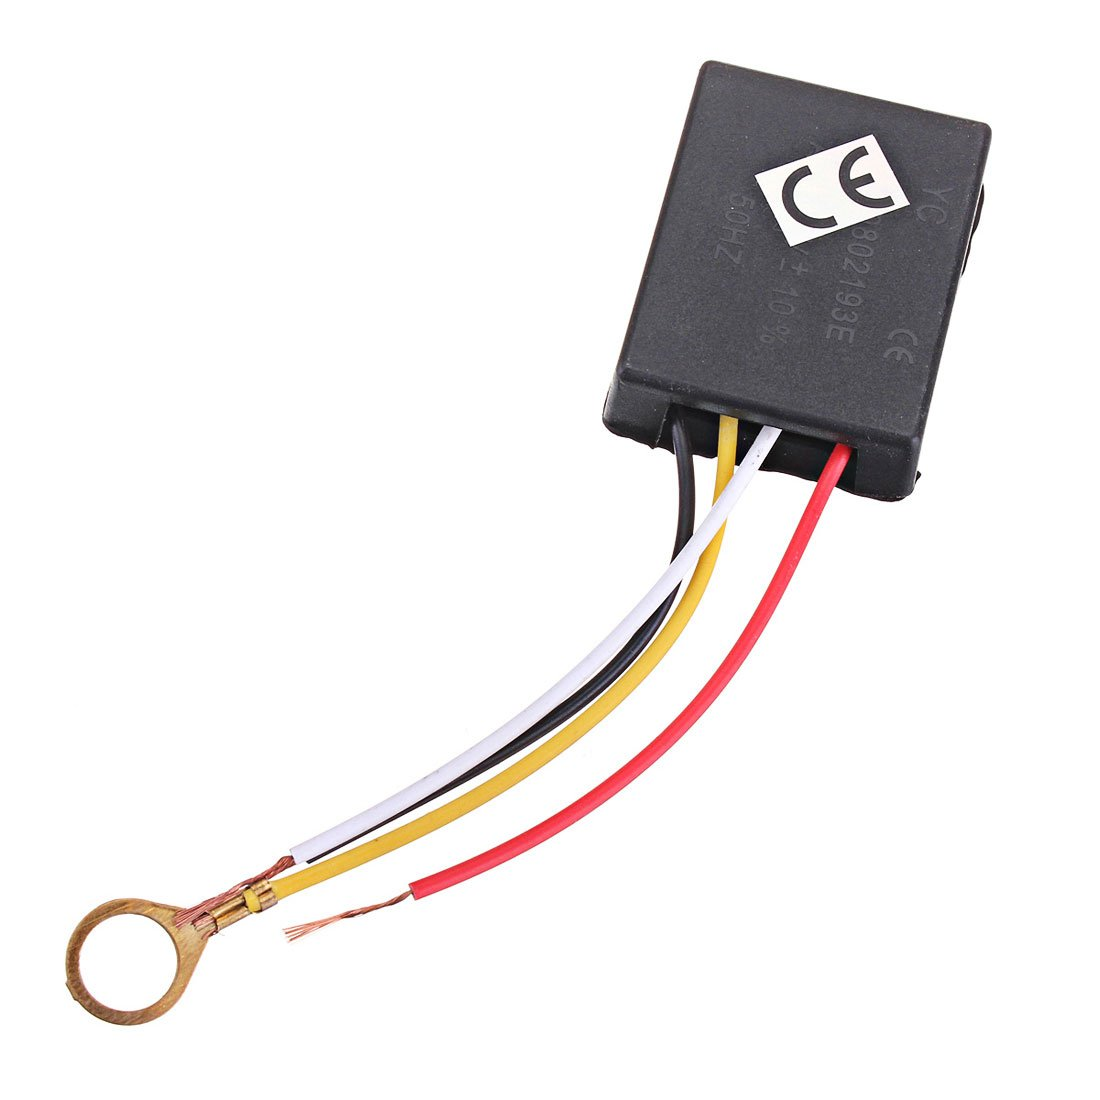 611O6b%2BbgWL._SL1100_ zing ear tp 01 zh touch lamp light dimmer switch control sensor on zing ear tp-01 zh wiring diagram at mifinder.co